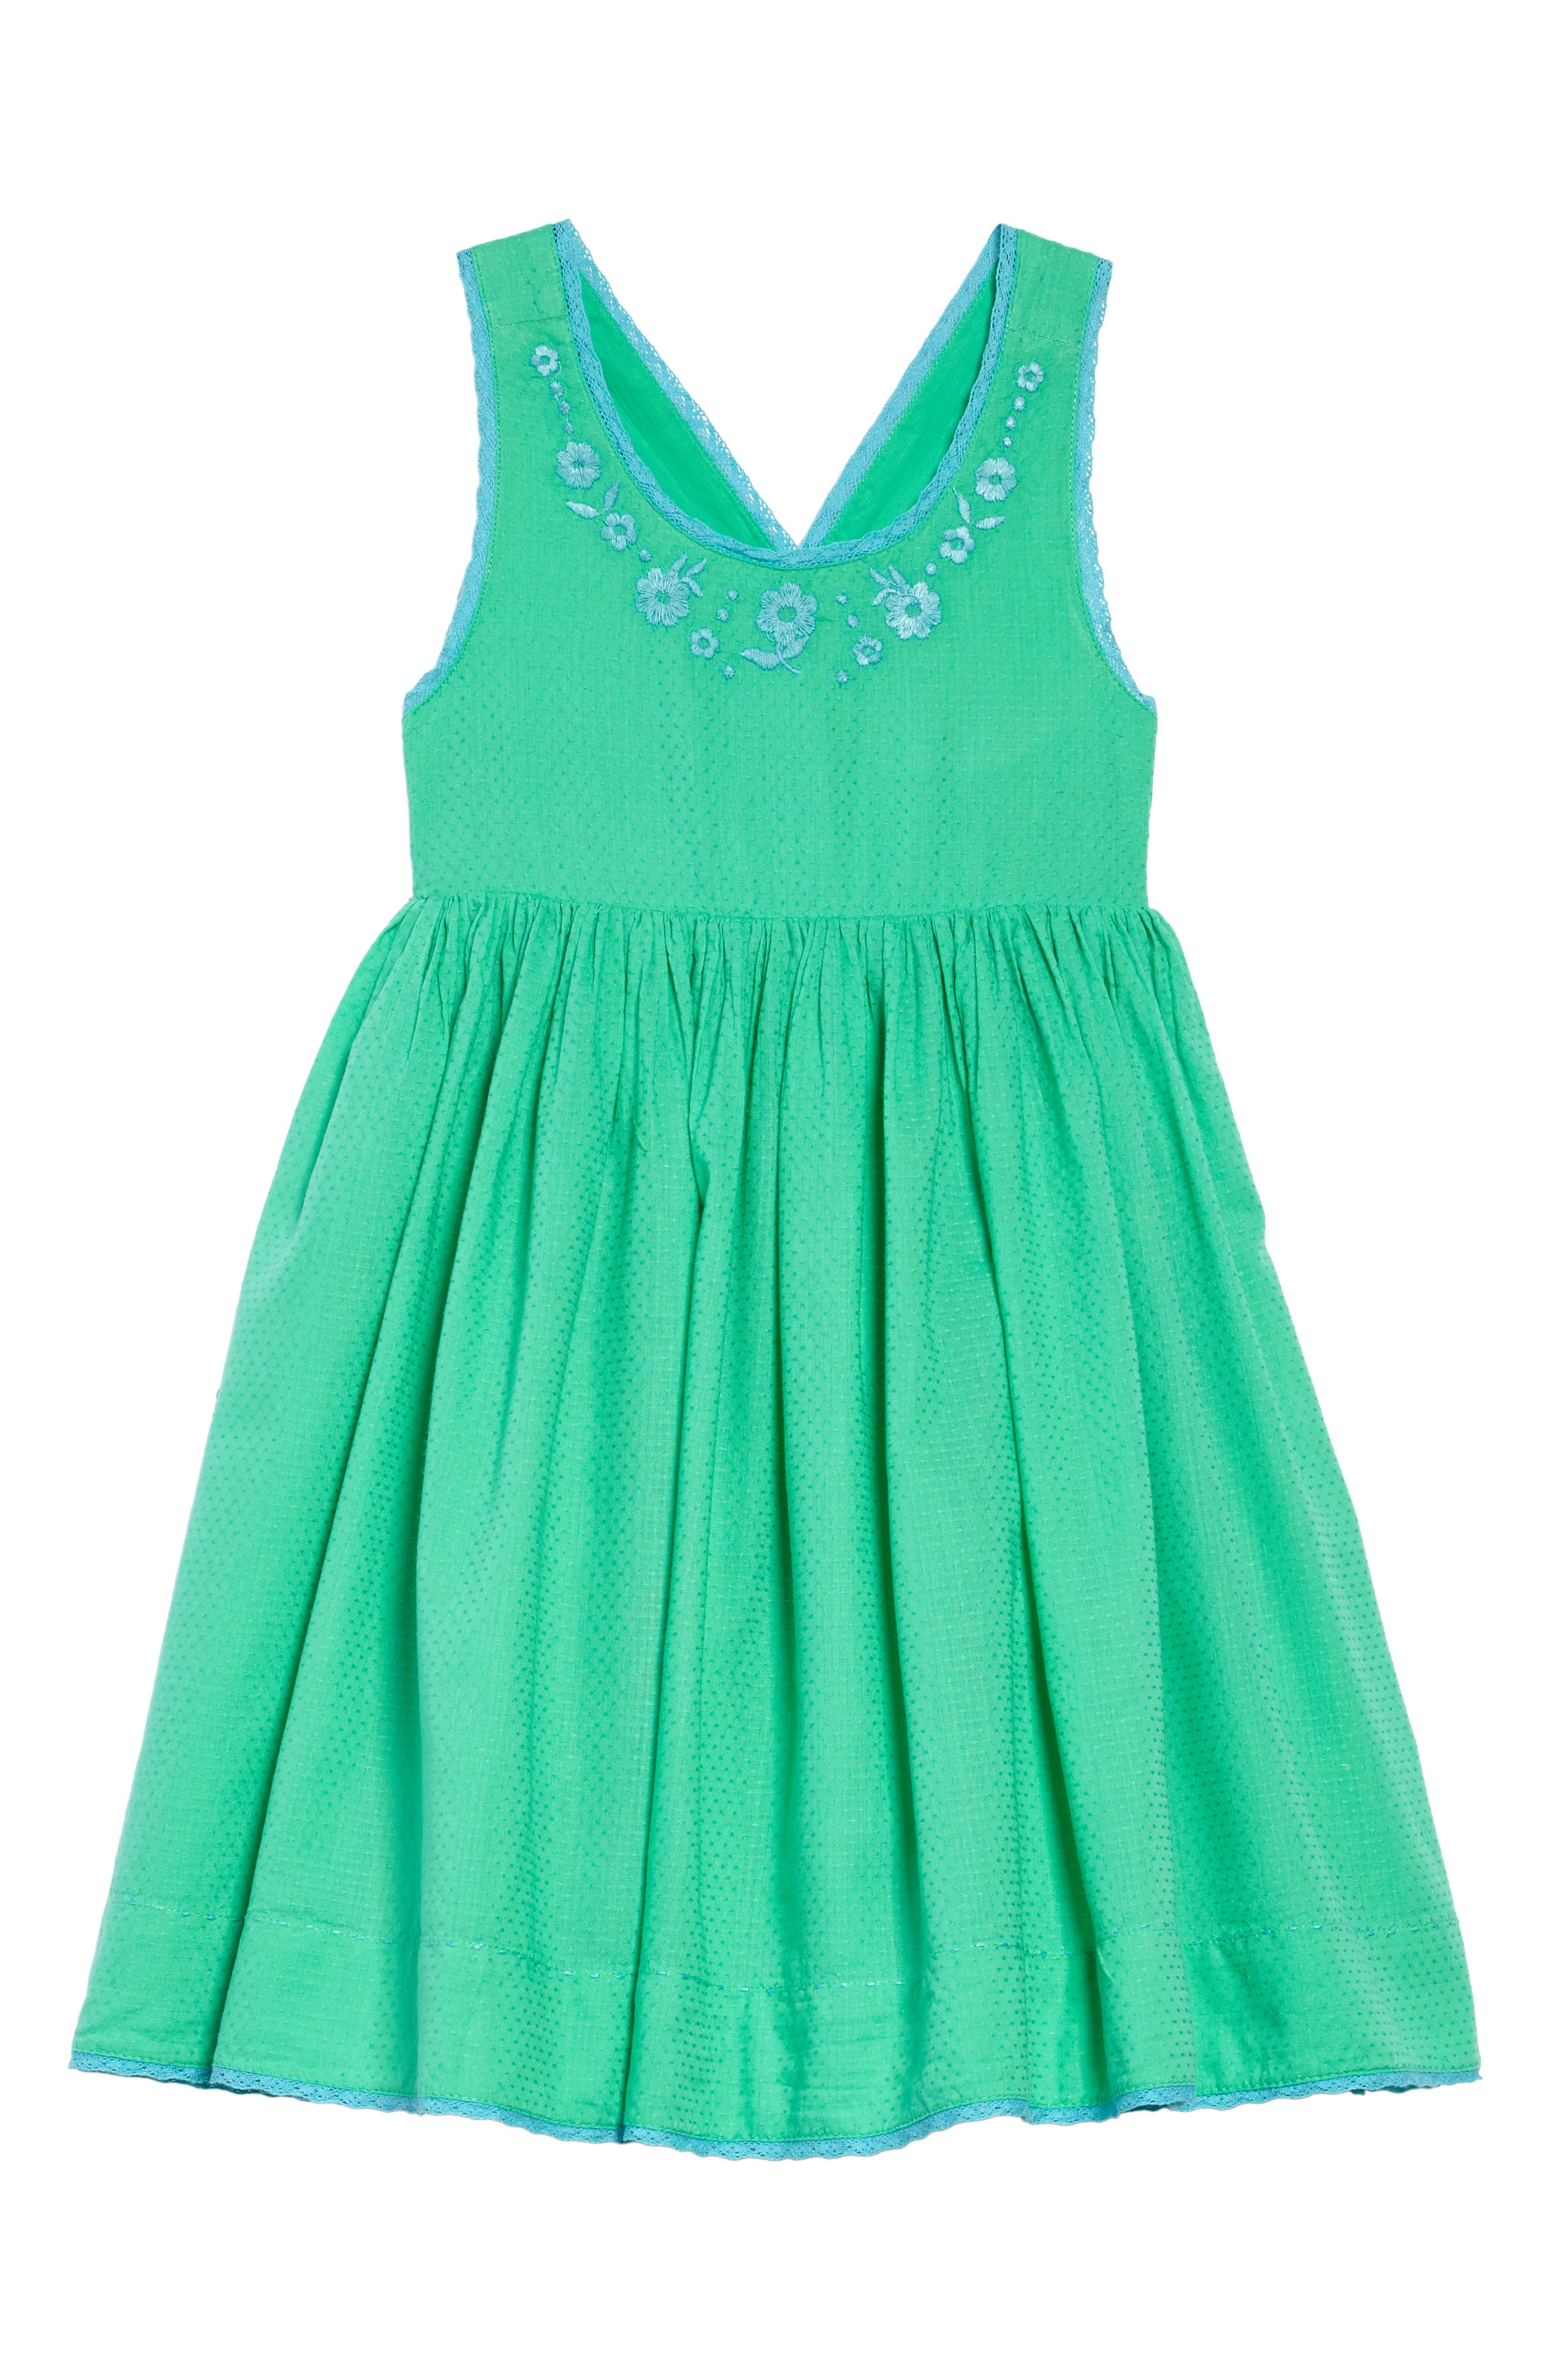 Embroidered Dress,                             Main thumbnail 1, color,                             Peppermint Cream Green